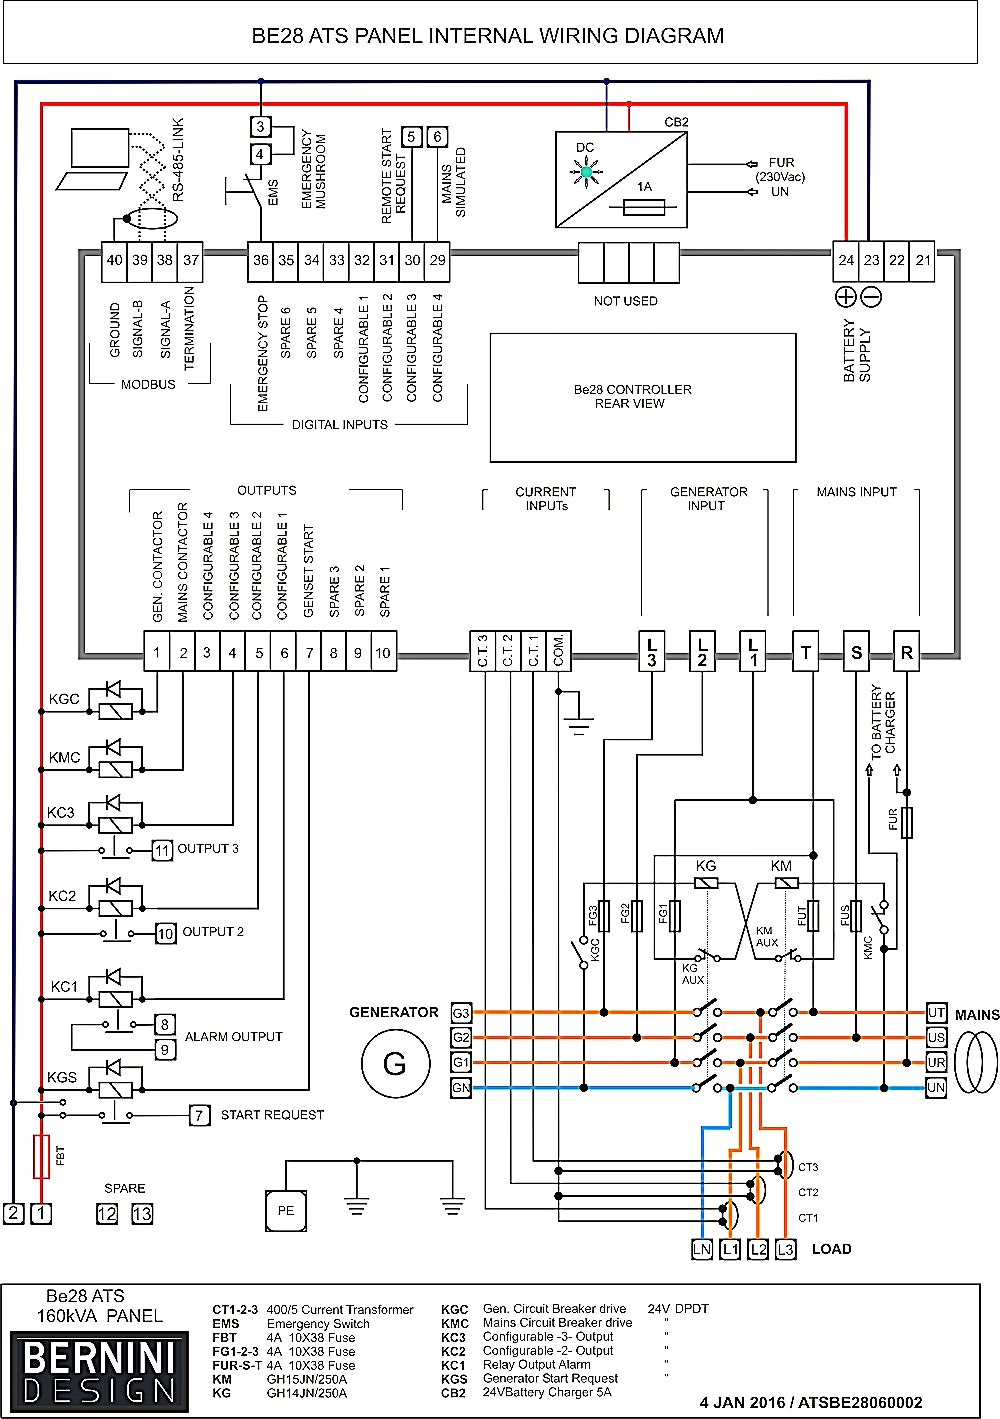 medium resolution of generac wiring diagram generac automatic transfer switch wiring diagram simple design between solargenerator and 13c